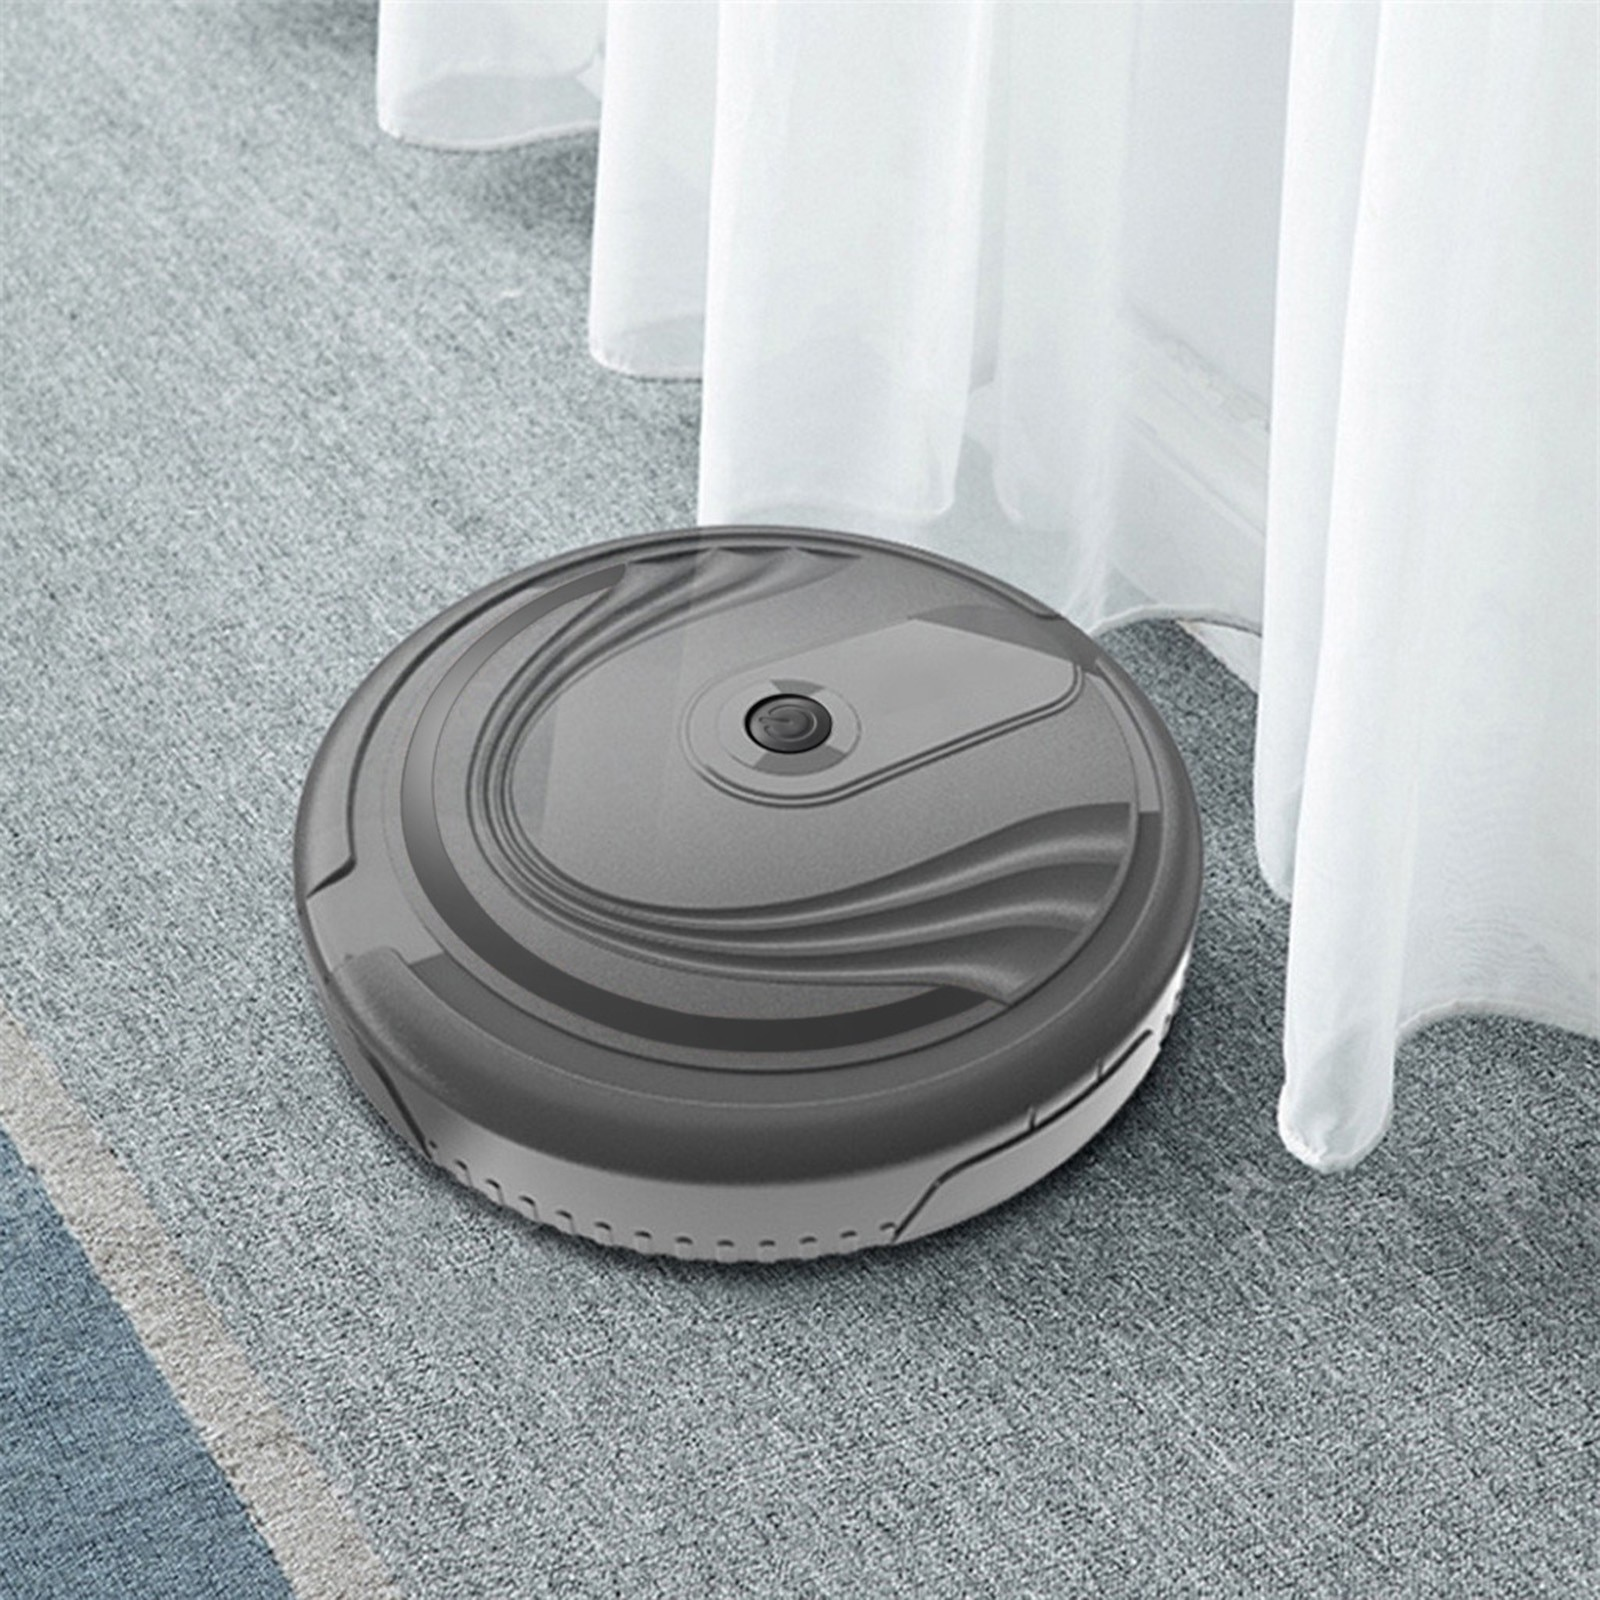 2021 New Household Items Hot Sale Smart Robot Vacuum Cleaner Auto Floor Cleaning Toy Sweeping Sweepe